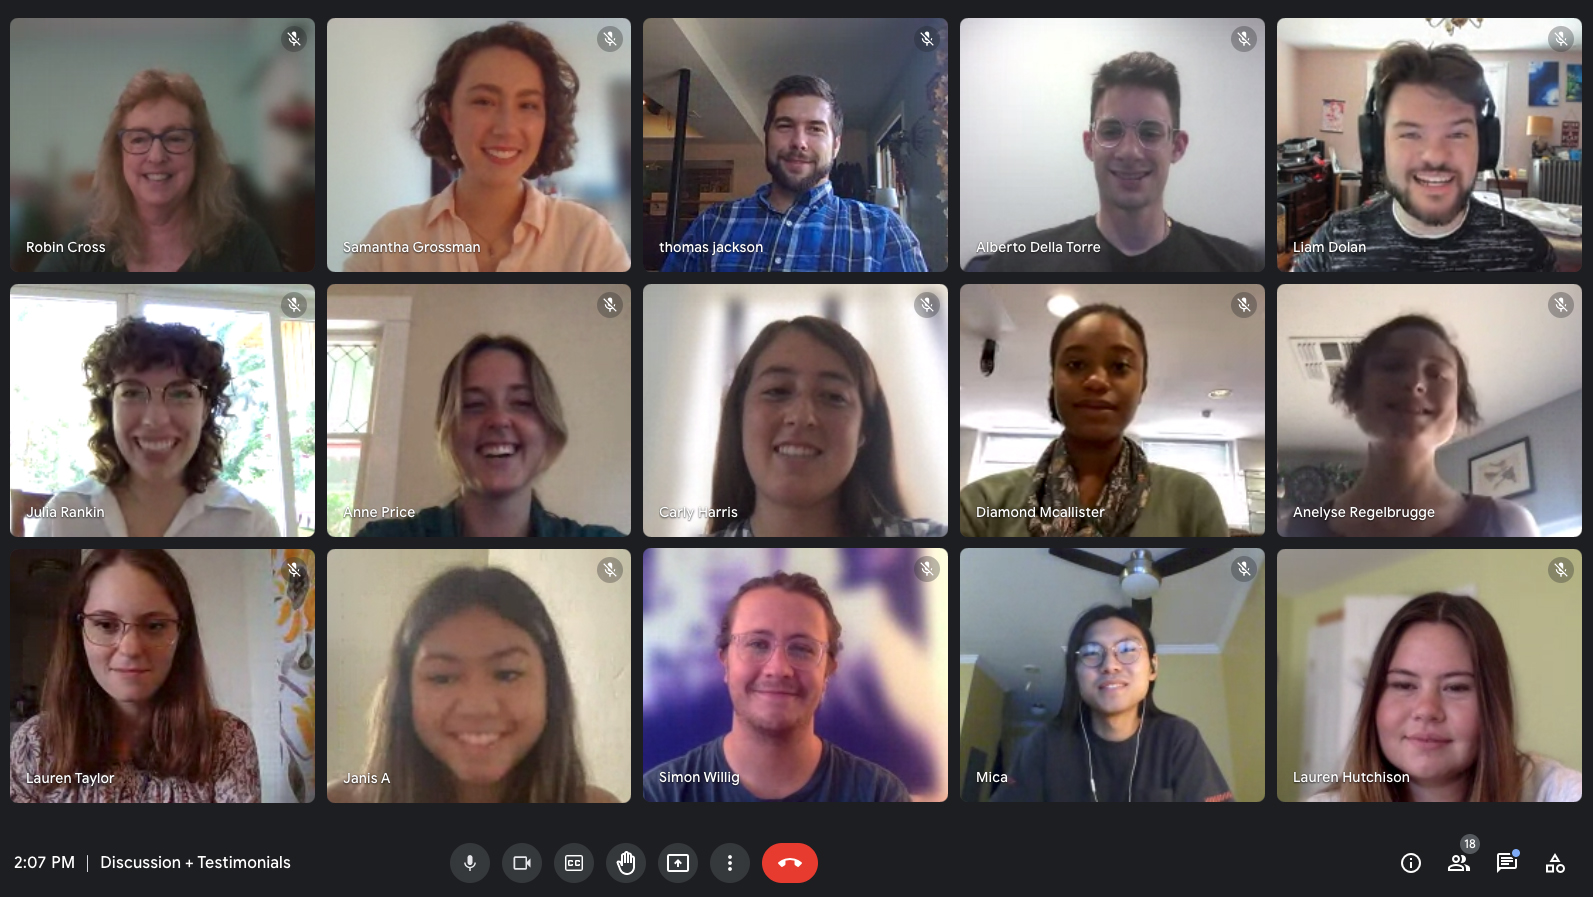 15 people on a Google Meet video teleconferencing screen.